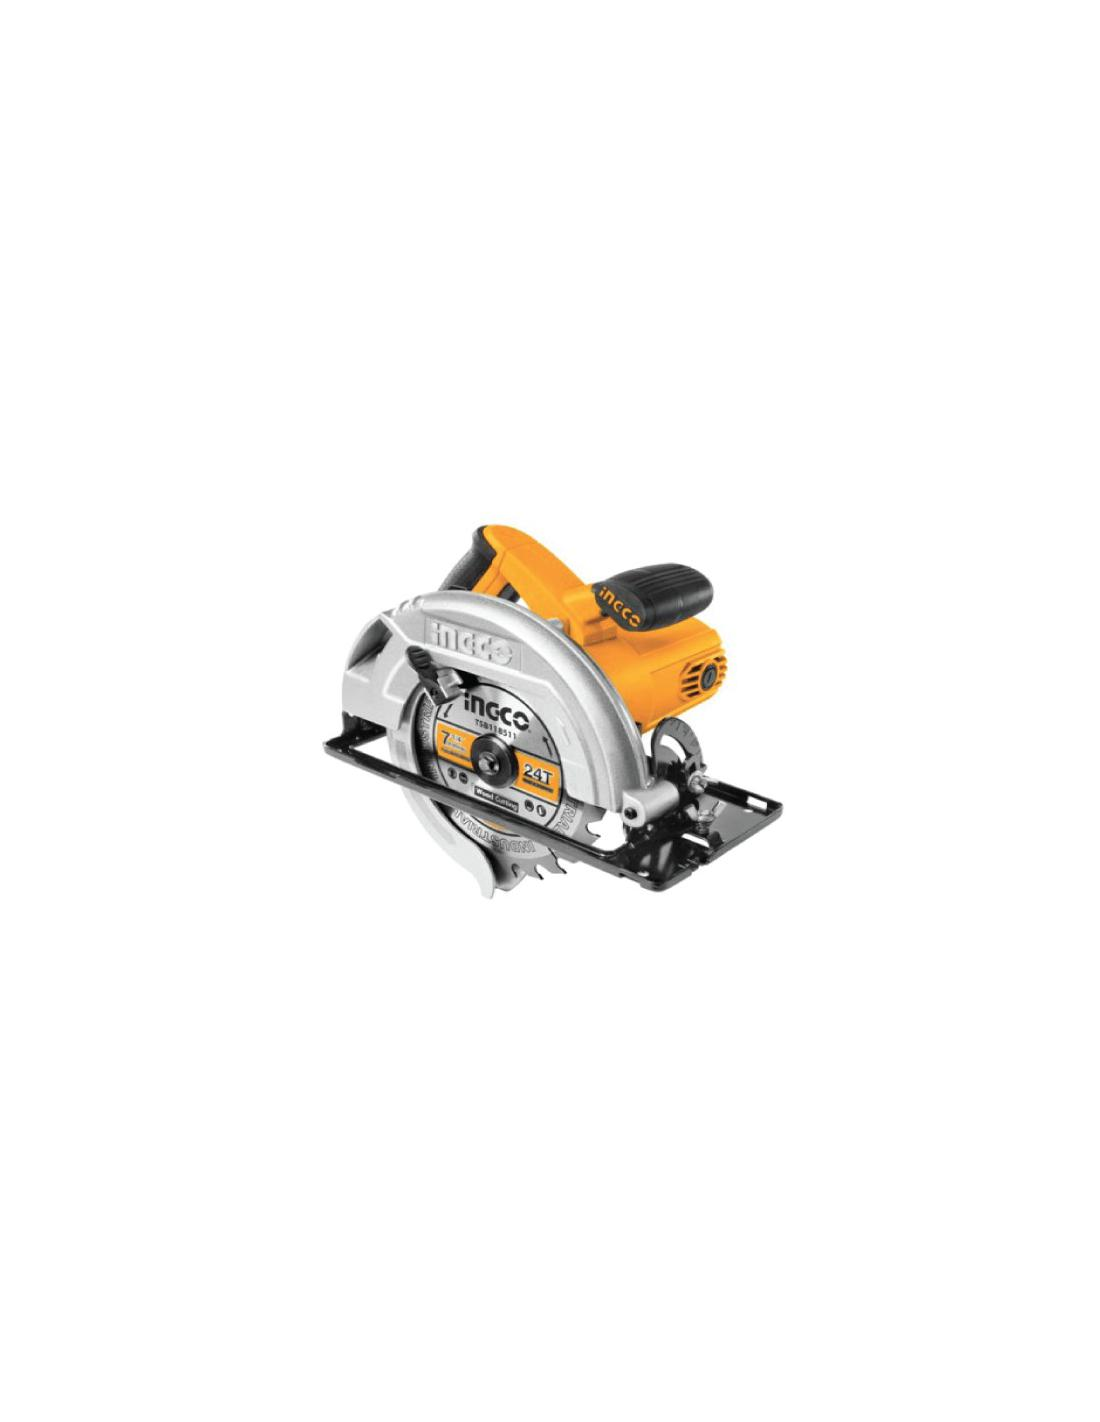 SCIE CIRCULAIRE INGCO 1400W - 1